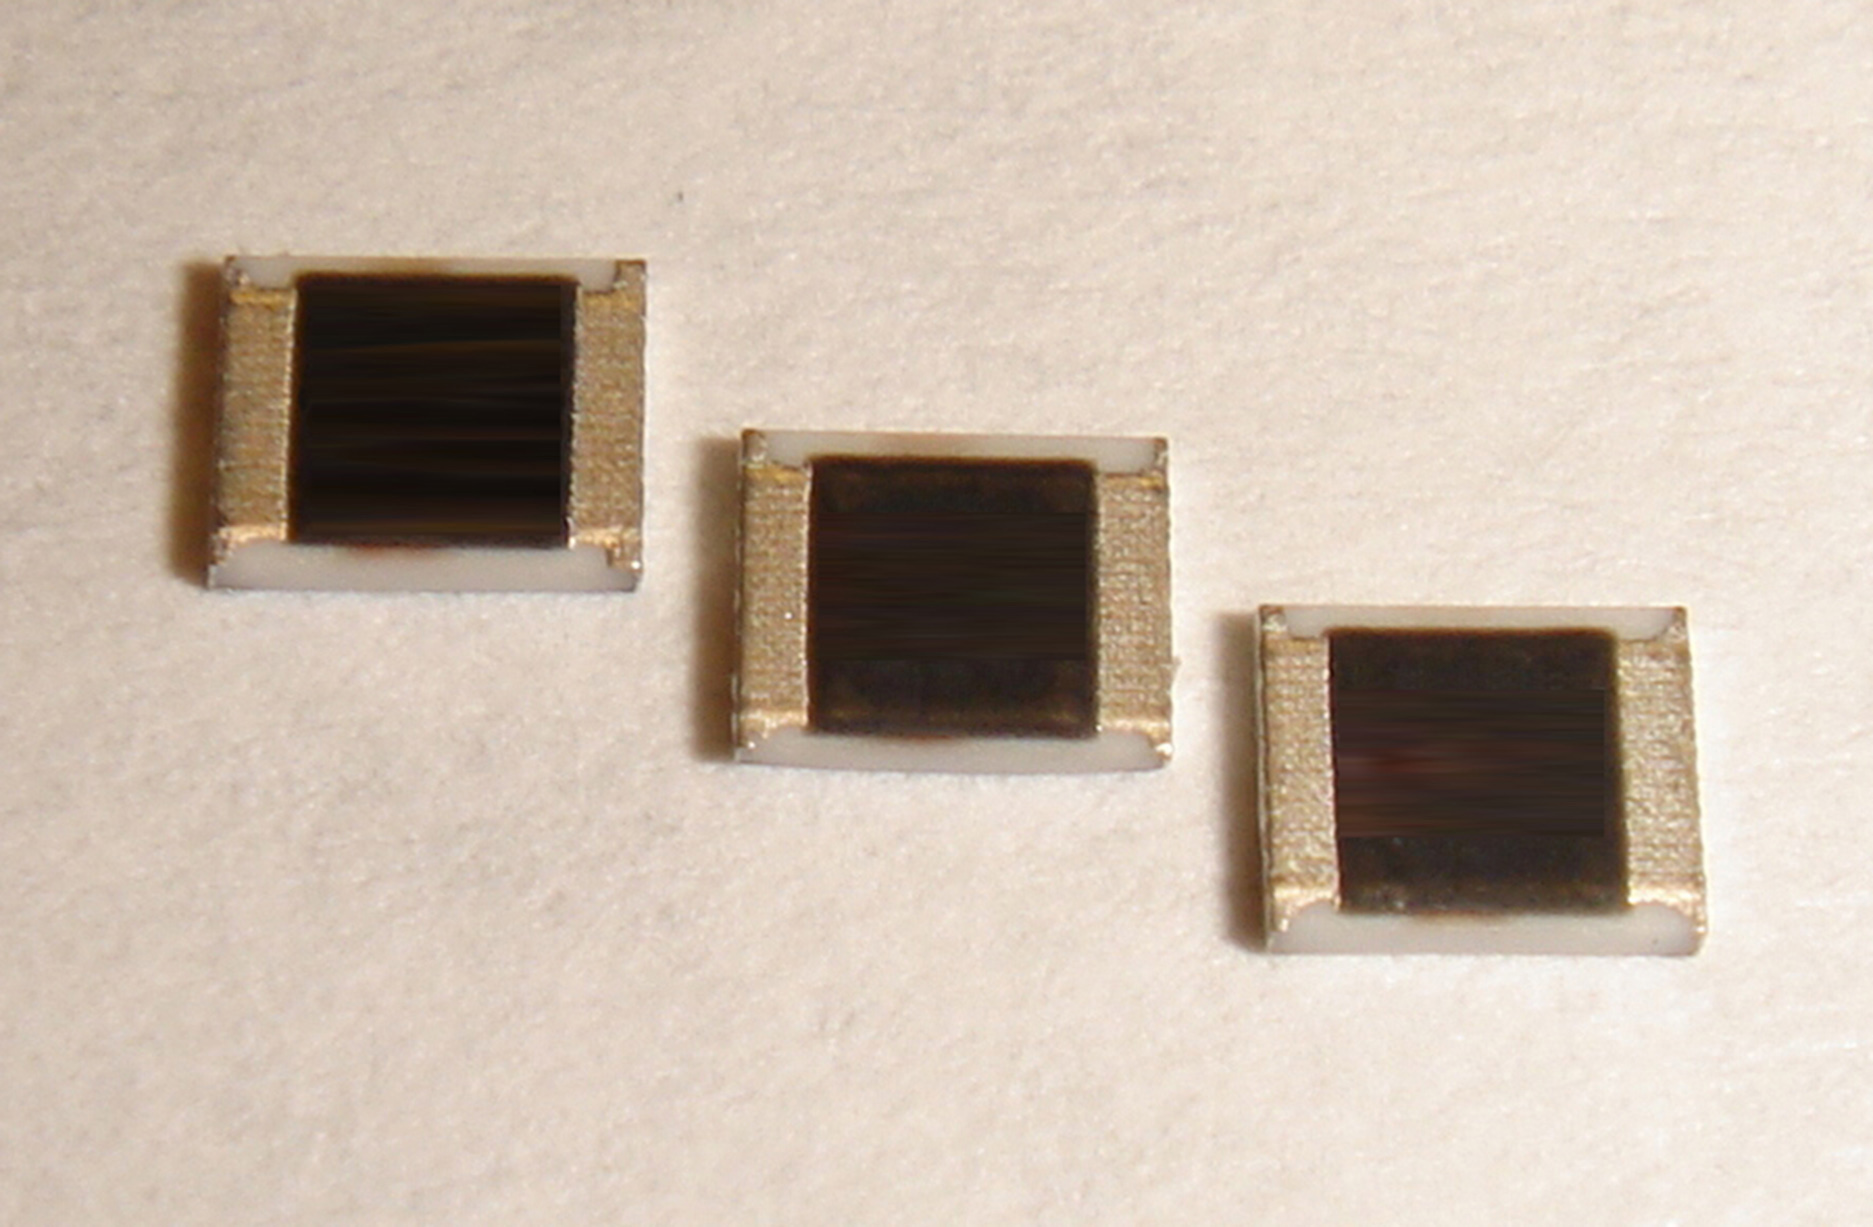 Current-Sensing Chip Resistor Offers Power Rating up to 5W